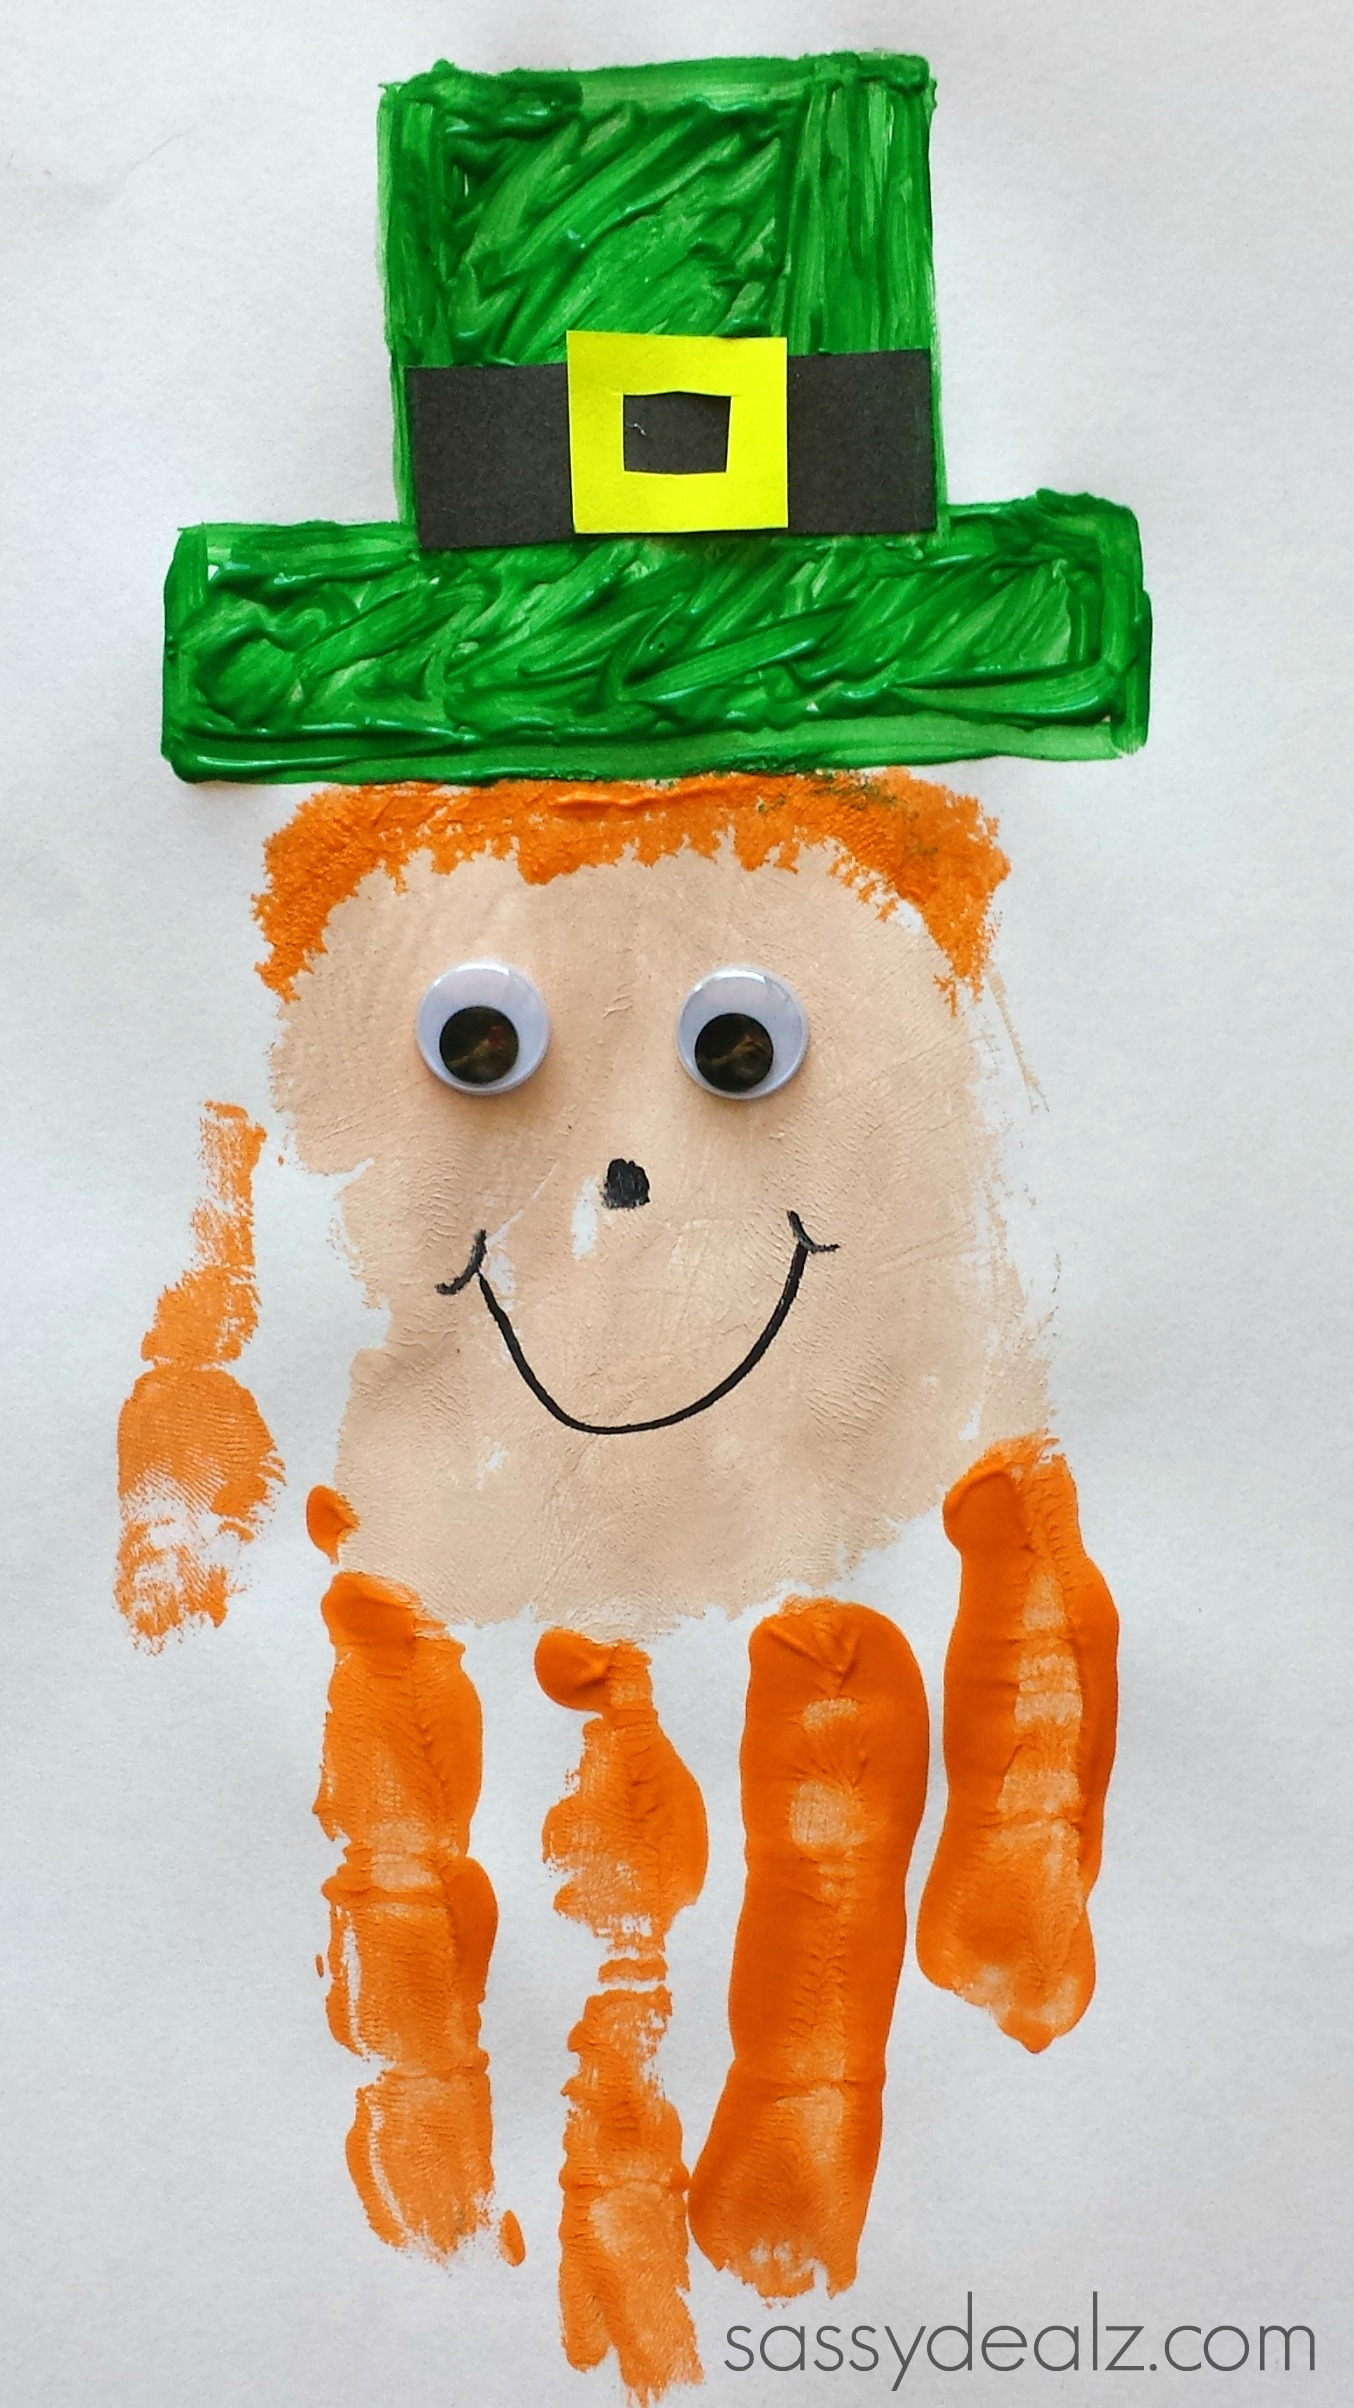 St patricks day preschool crafts - St Patrick Handprint Craft